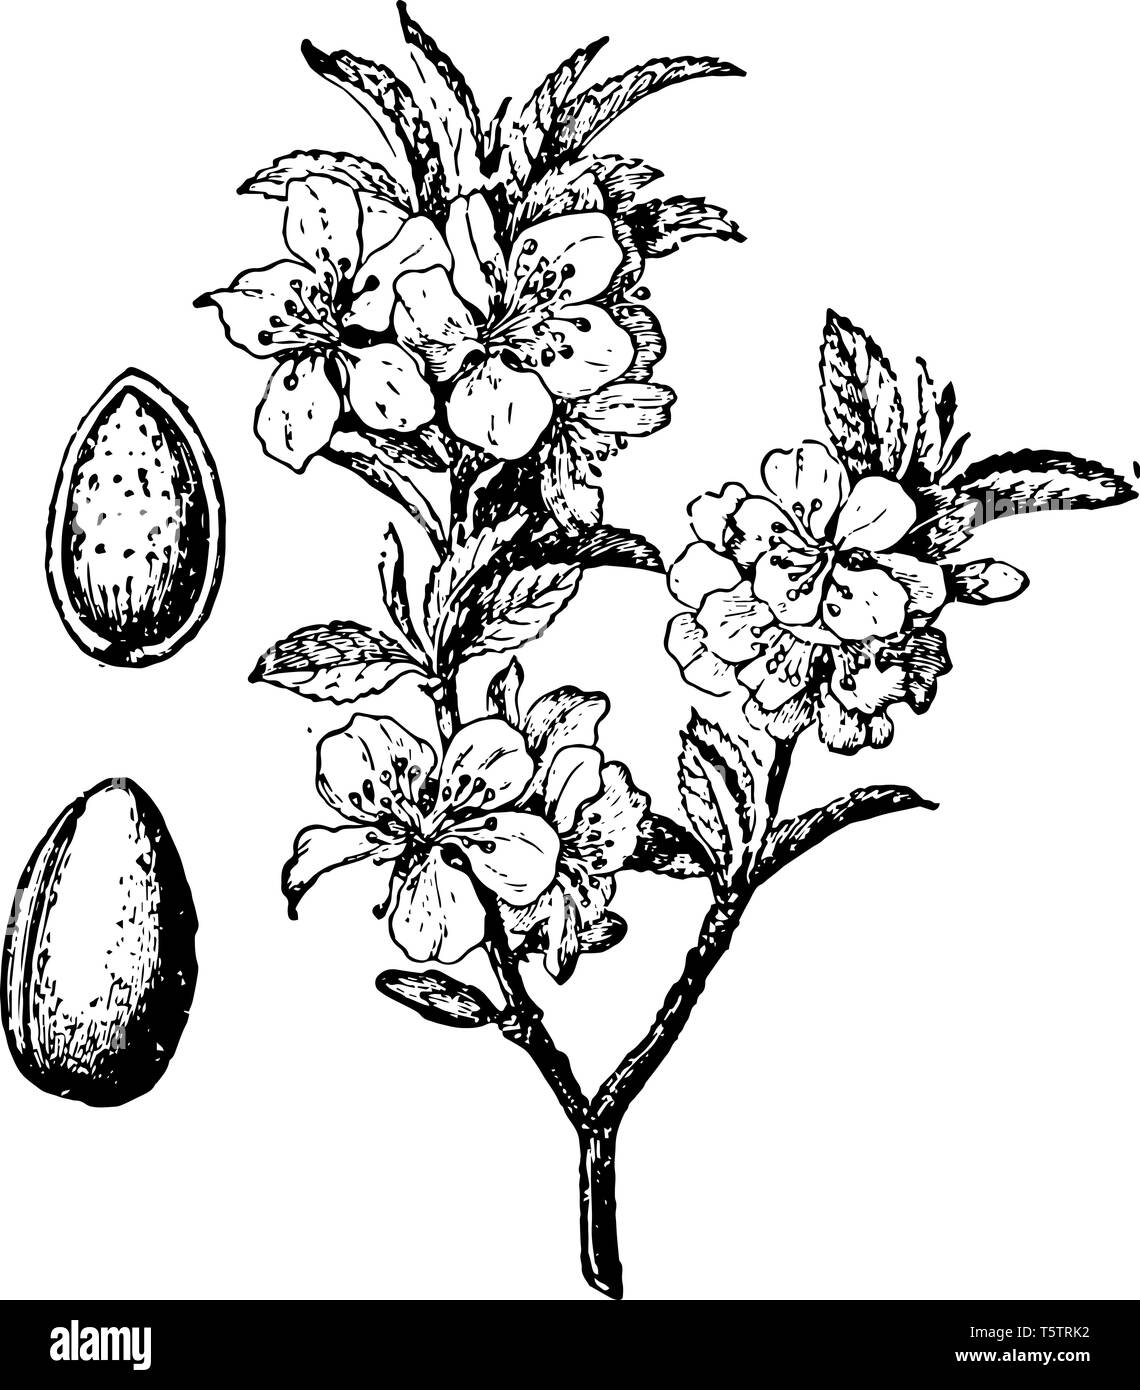 In This Image The Branch Blossom And Fruit Are The Almond Tree Vintage Line Drawing Or Engraving Illustration Stock Vector Image Art Alamy